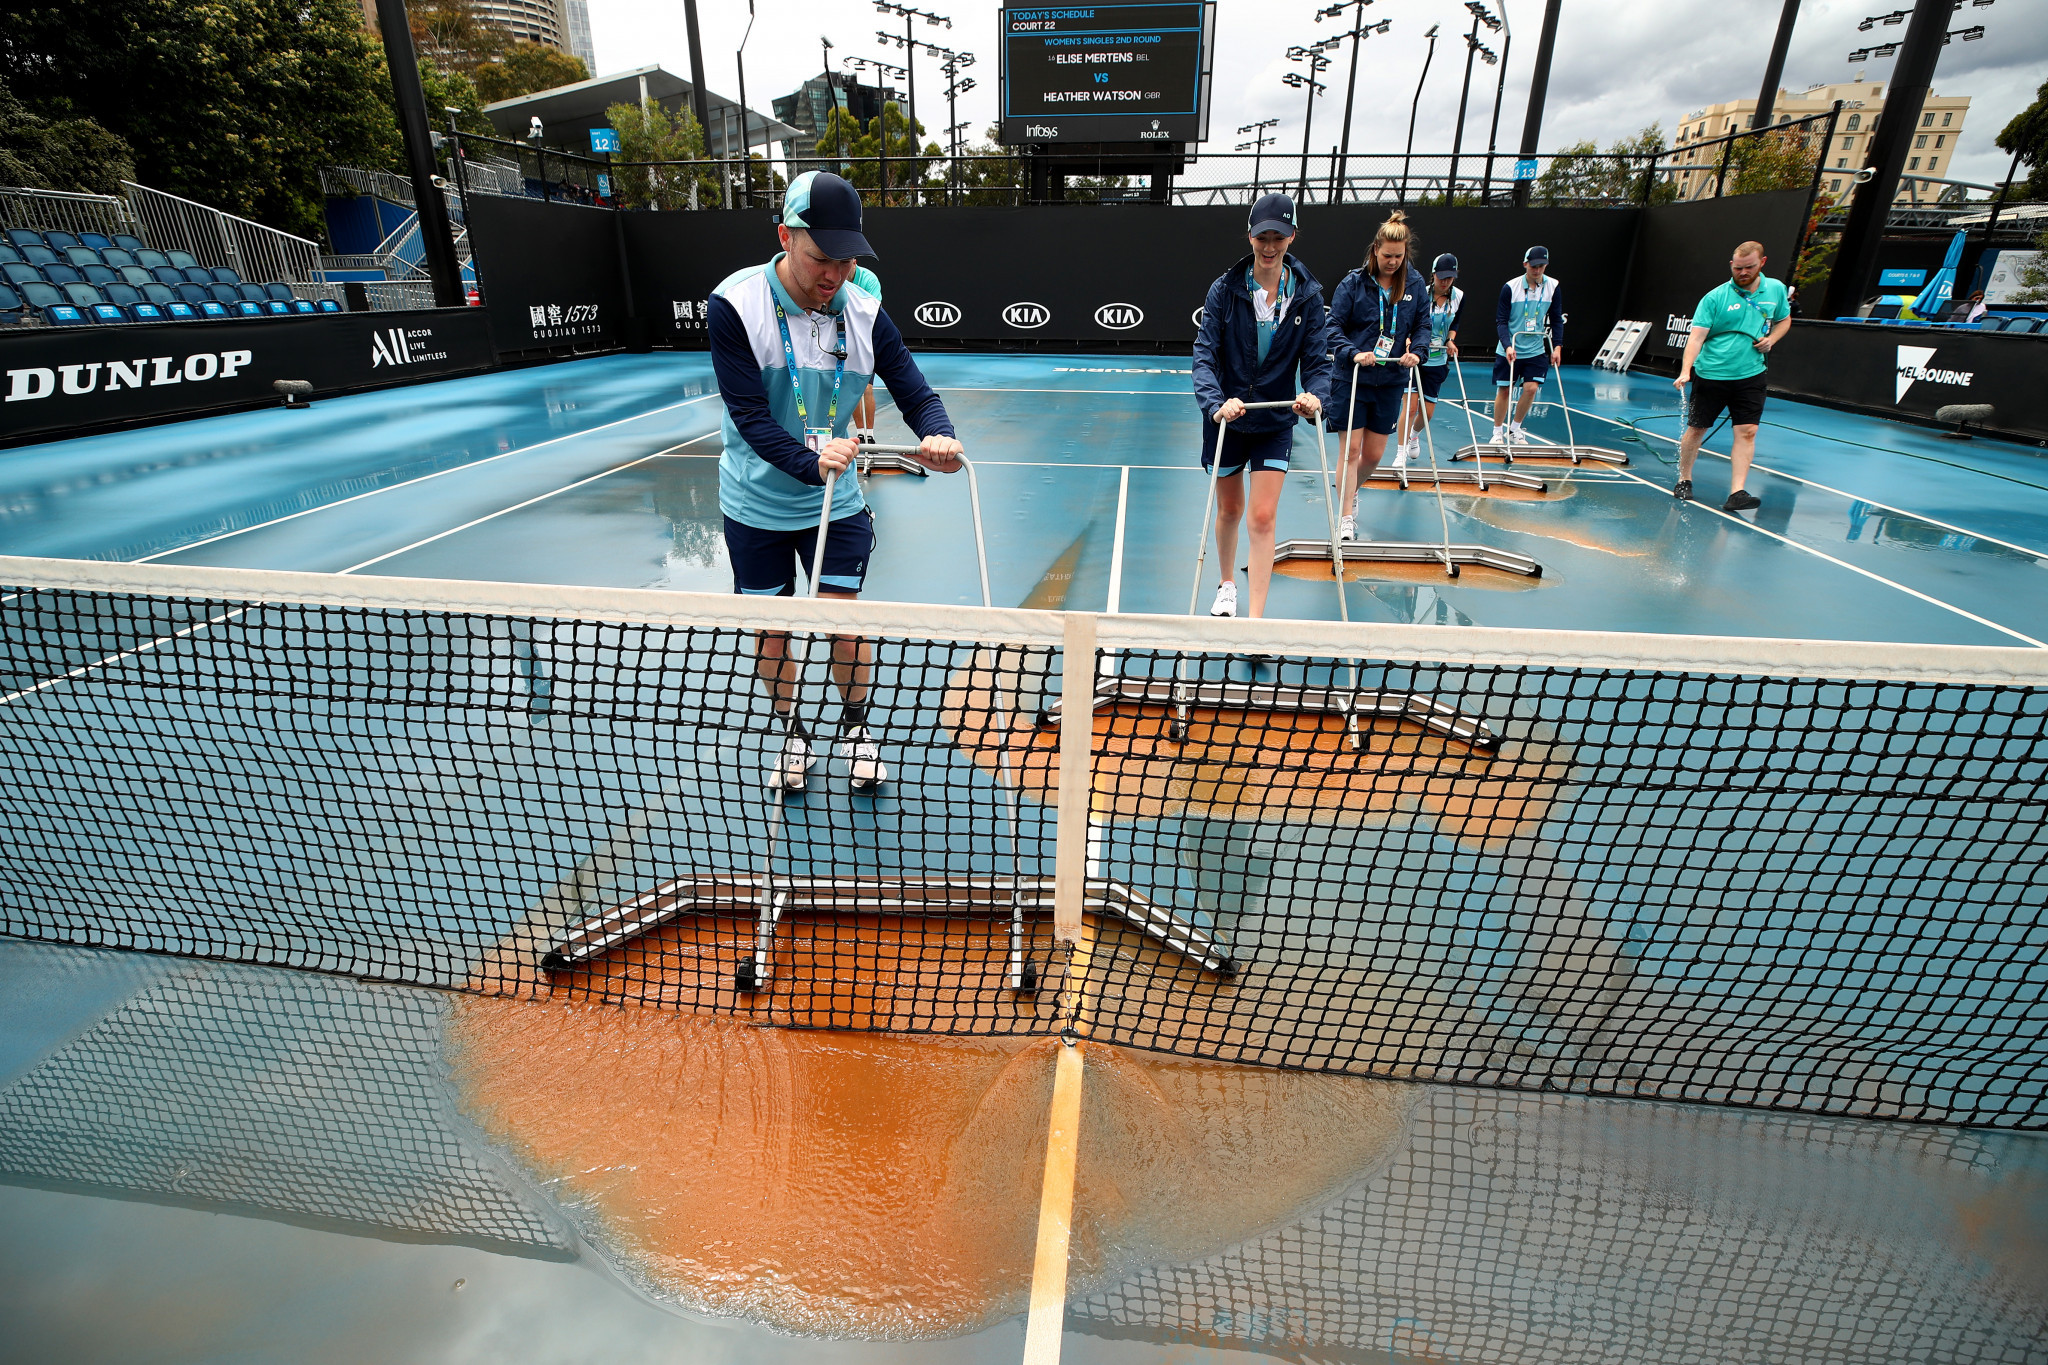 Dust settles on day four of Australian Open